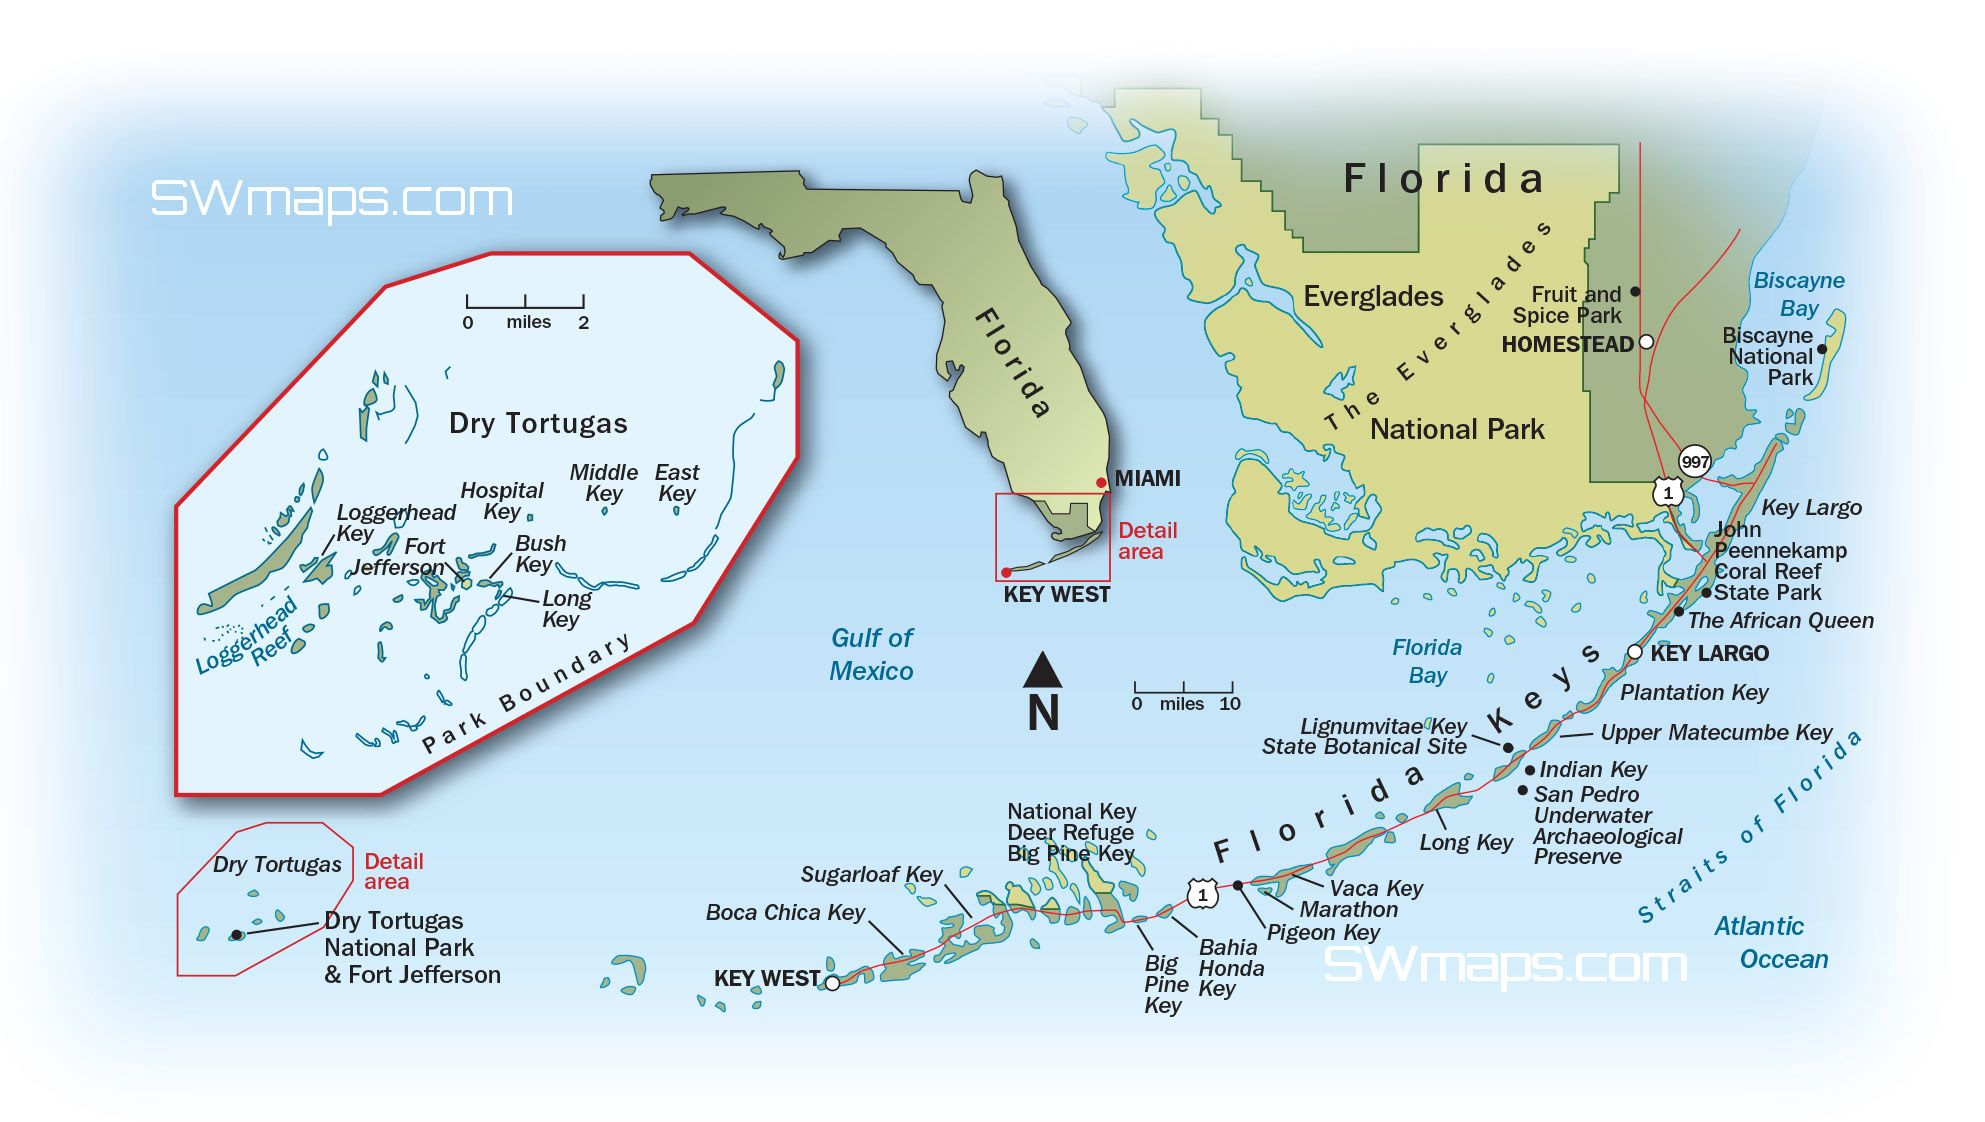 Dry Tortugas National Park Location Florida Keys And Dry Tortugas Map Kiteboardin 39 N The